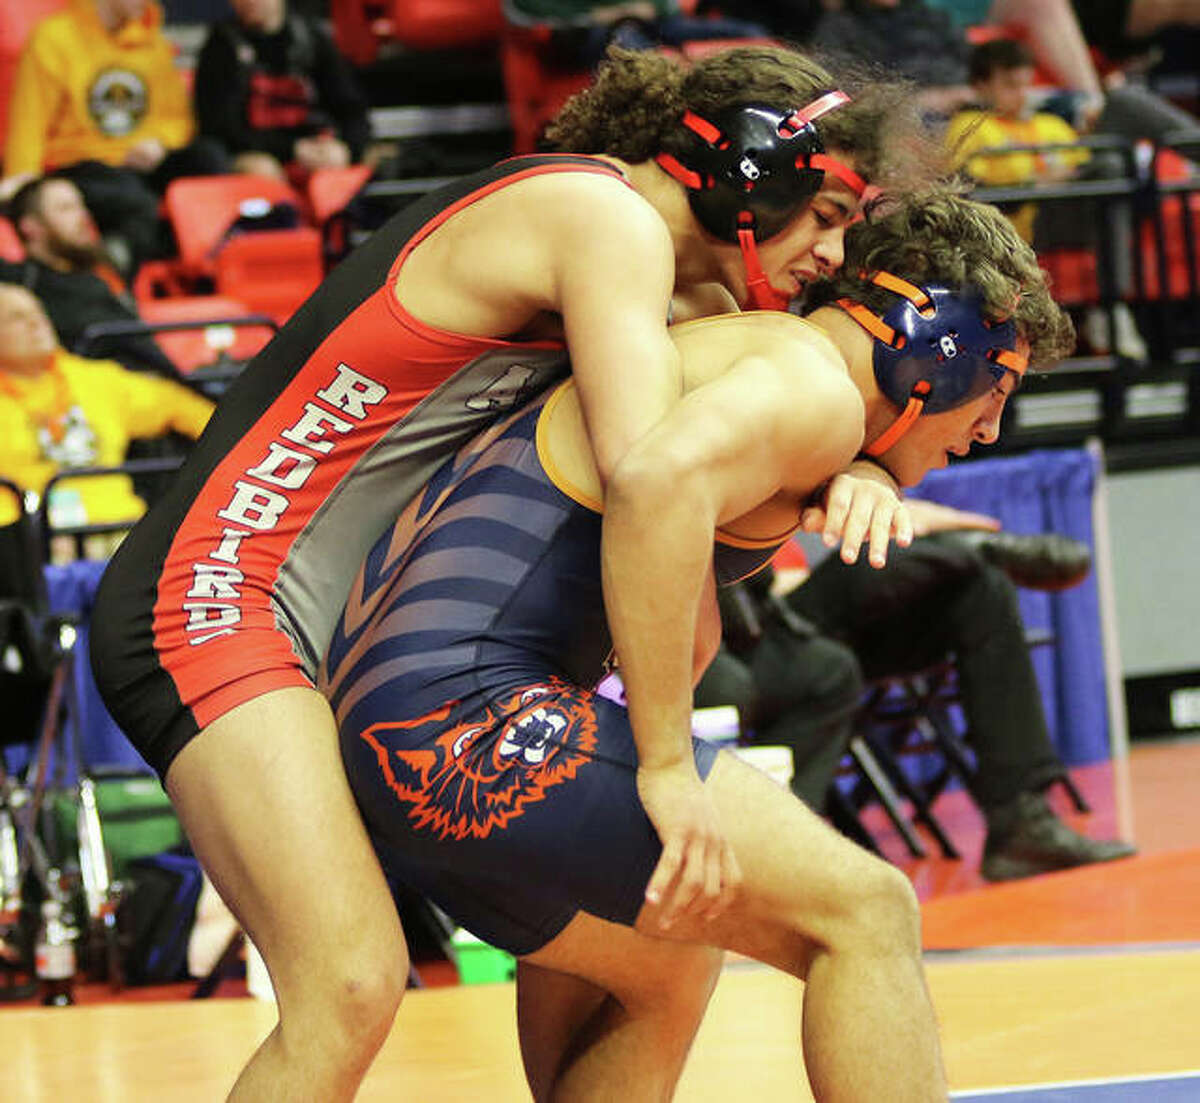 Damien Jones (left) was one of Alton two champions at the Illinois Wrestling Coaches and Officials Association regional at Edwardsville. Joab Tobin also won a championship. They, along with six other redbirds, will advance to the IWCOA Sectional next weekend at Decatur's Millikin University.